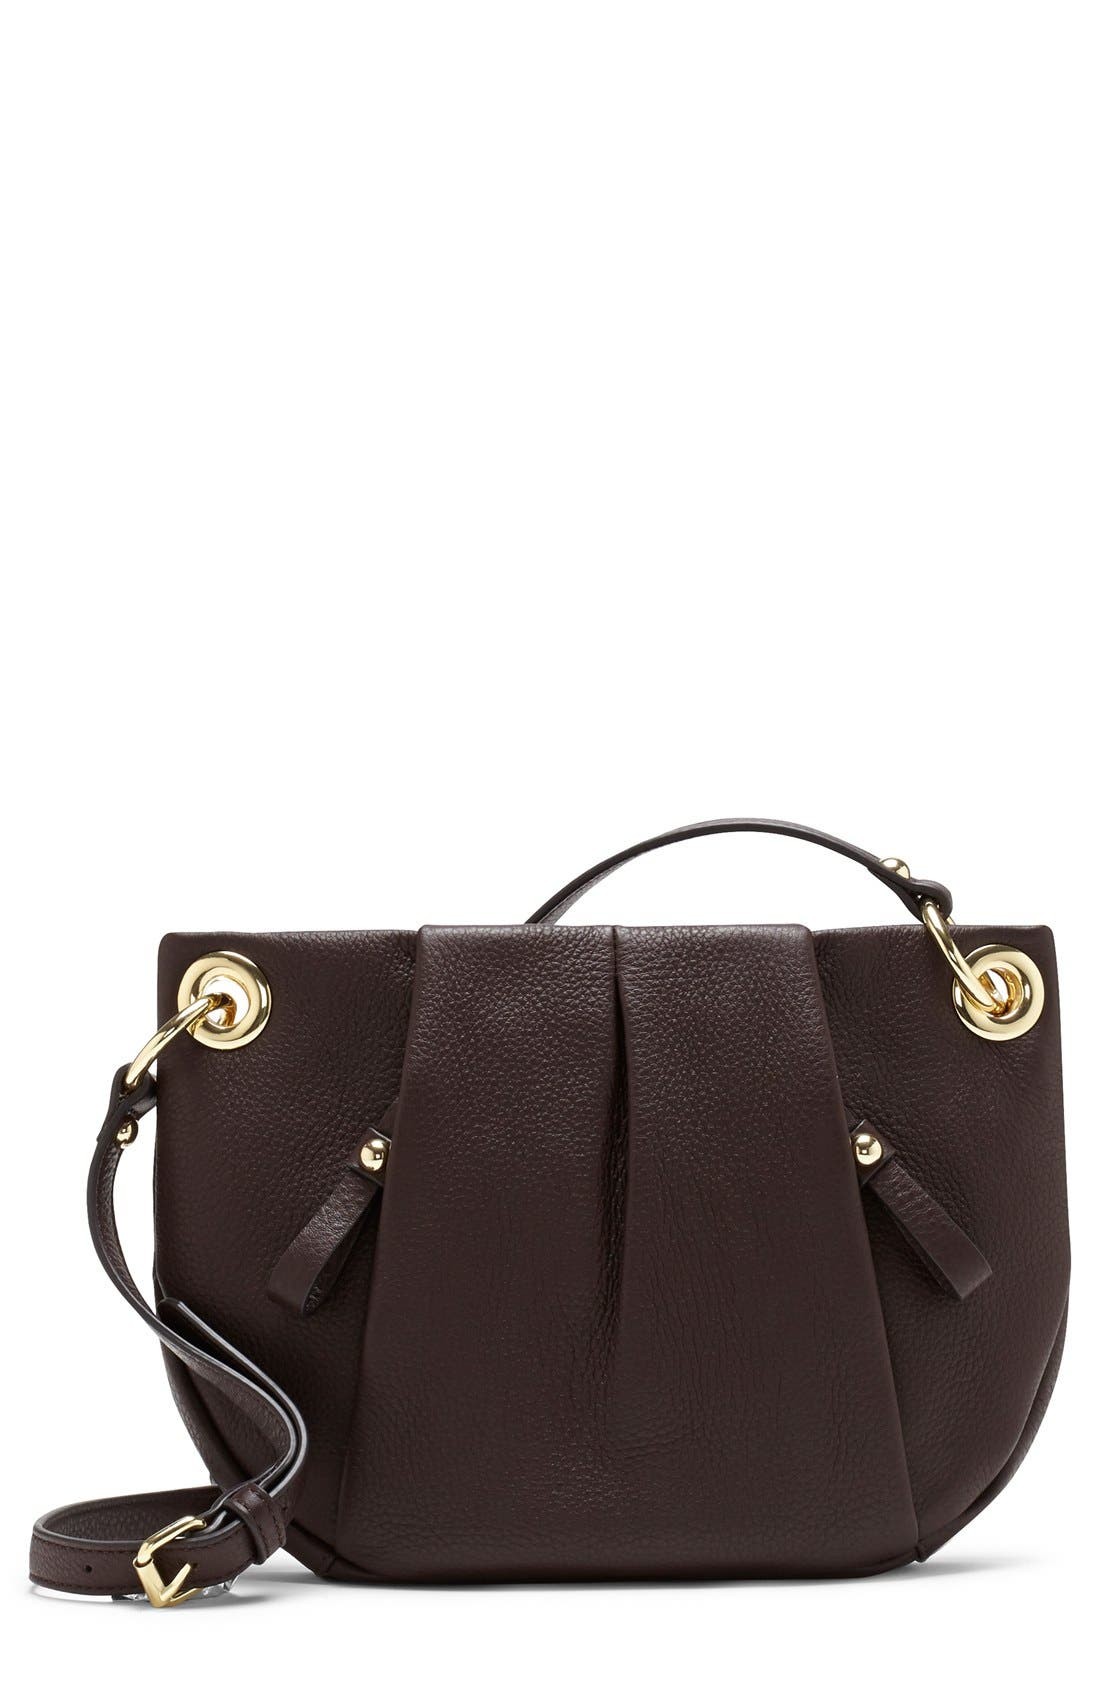 Main Image - Vince Camuto 'Cristina' Crossbody Bag